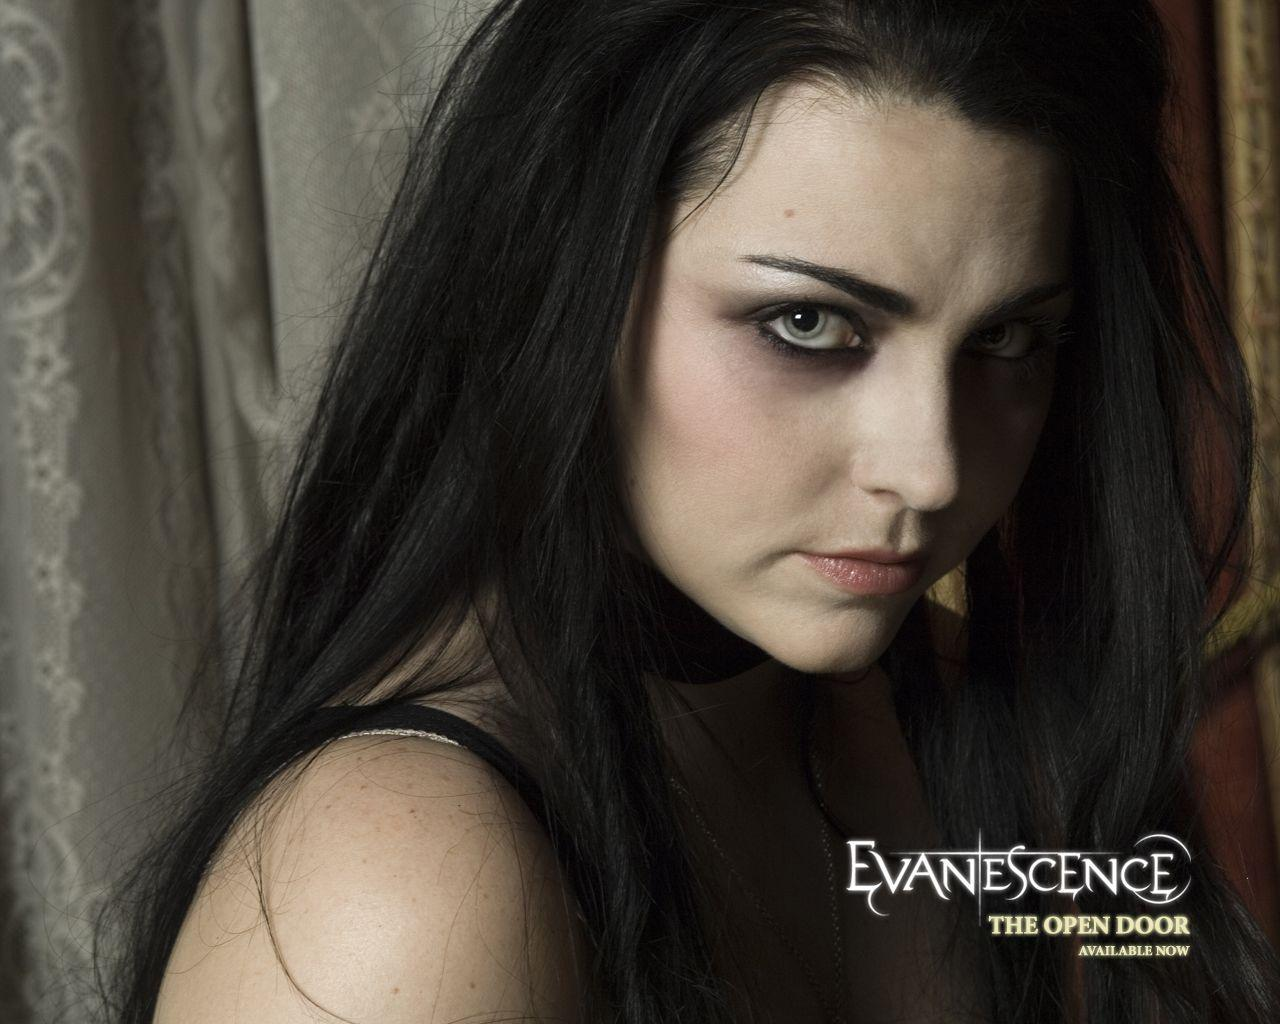 Evanescence 2016 Wallpapers 1280x1024